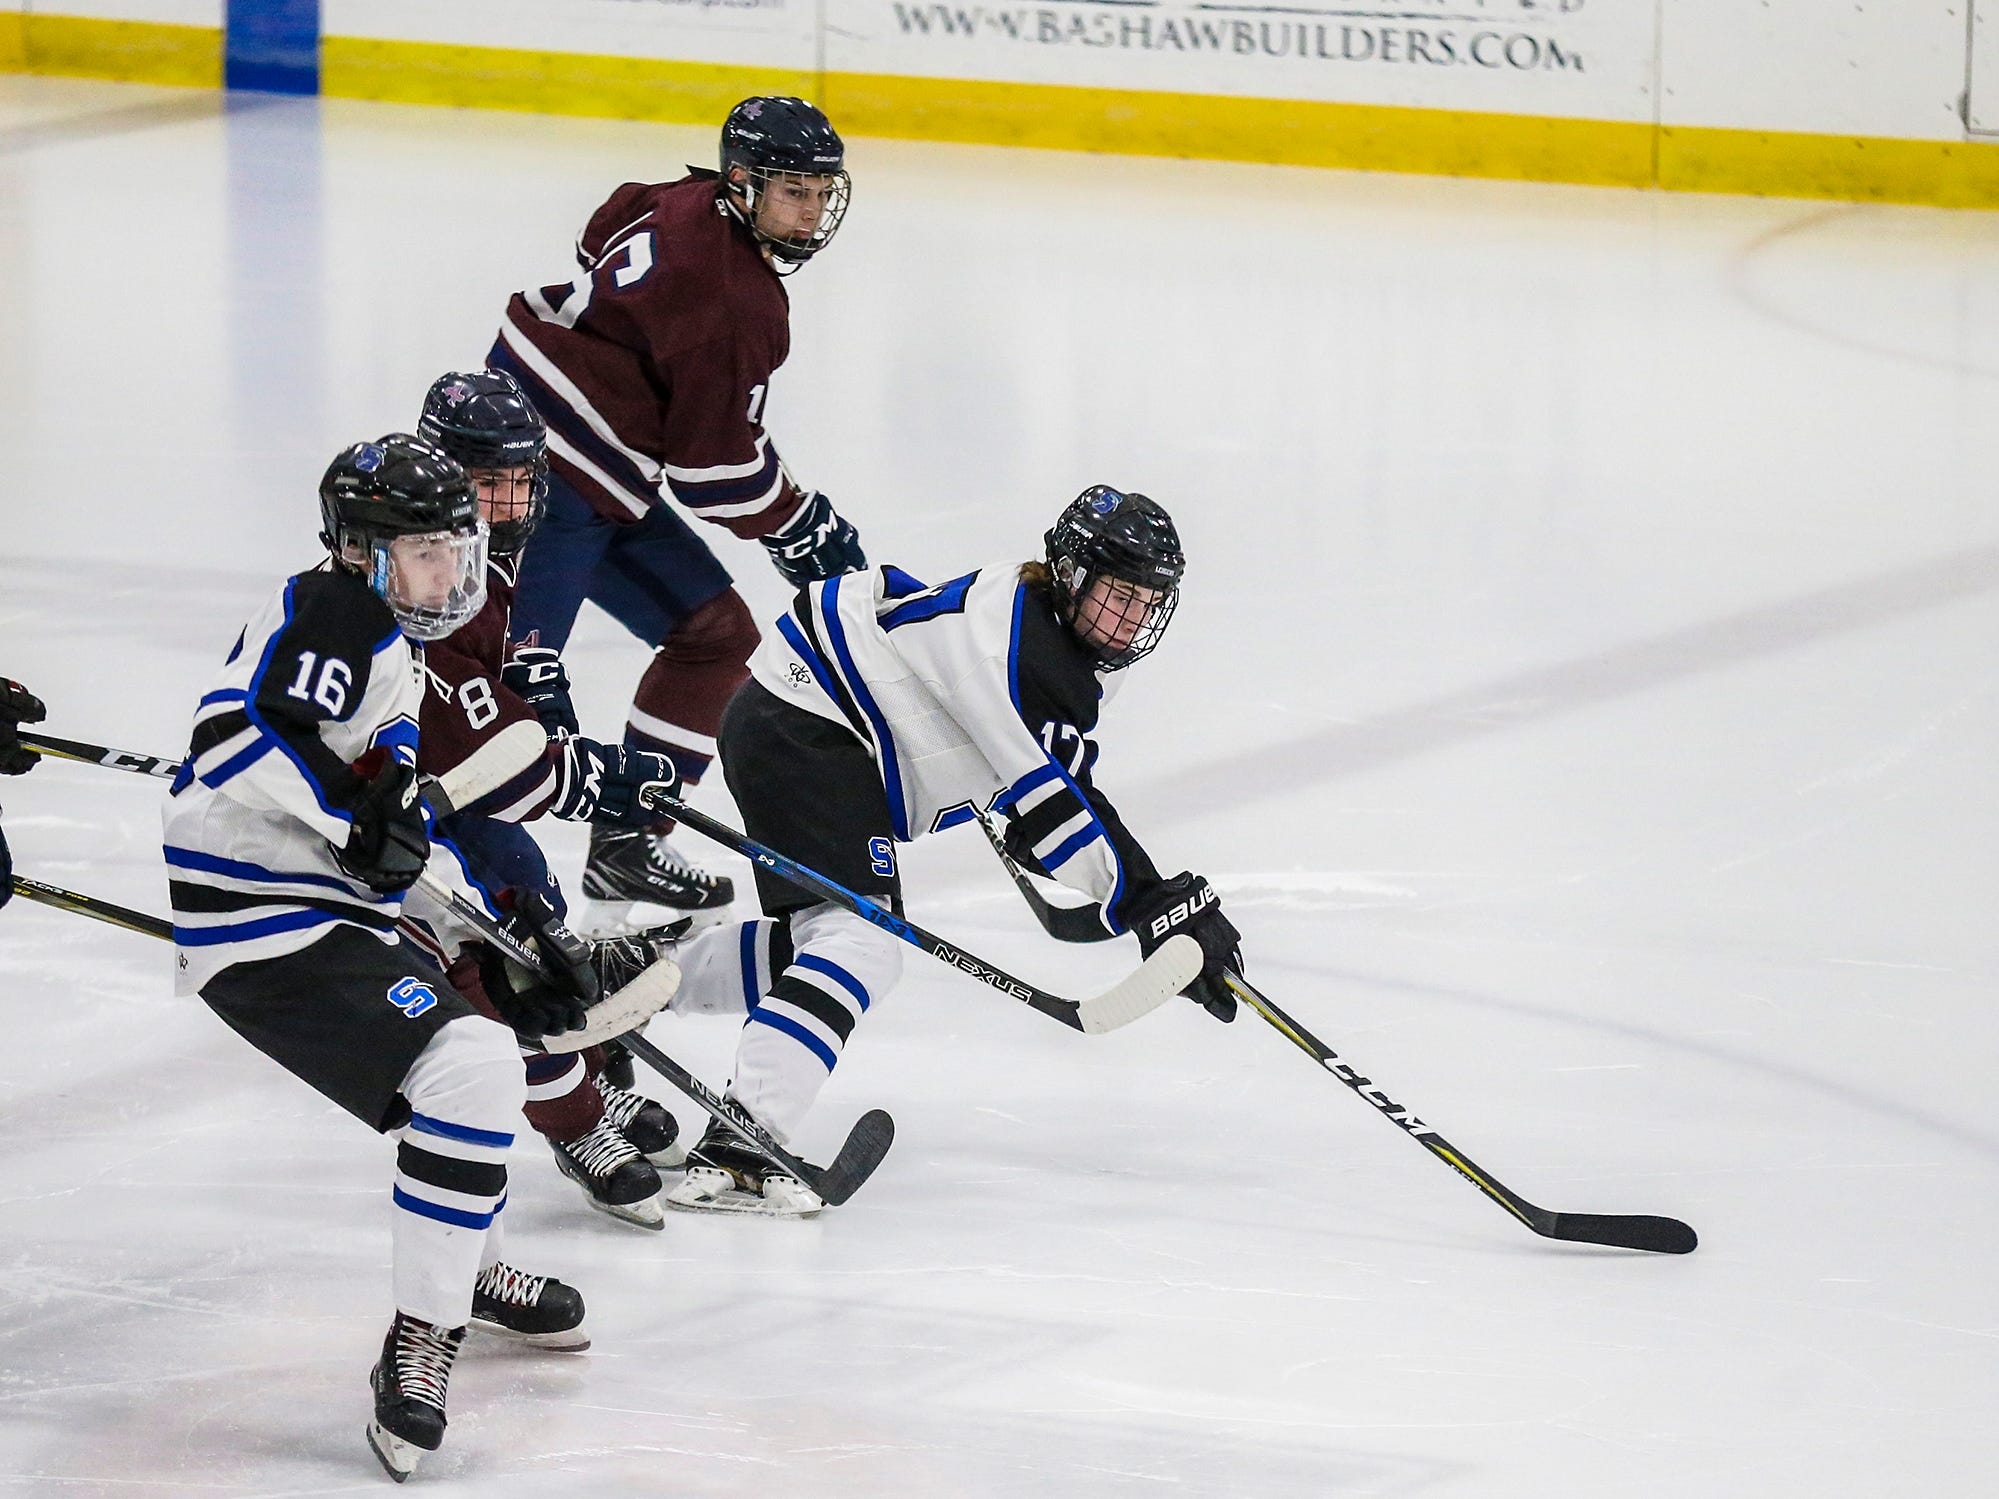 St. Mary's Springs Academy co-op hockey's Caleb Schaefer (16) Calvin Grass (17) and Appleton United's Josh Christofferson (8) go after the puck during their game Thursday, November 29, 2018 played in Fond du Lac. Springs won the game 8-1. Doug Raflik/USA TODAY NETWORK-Wisconsin